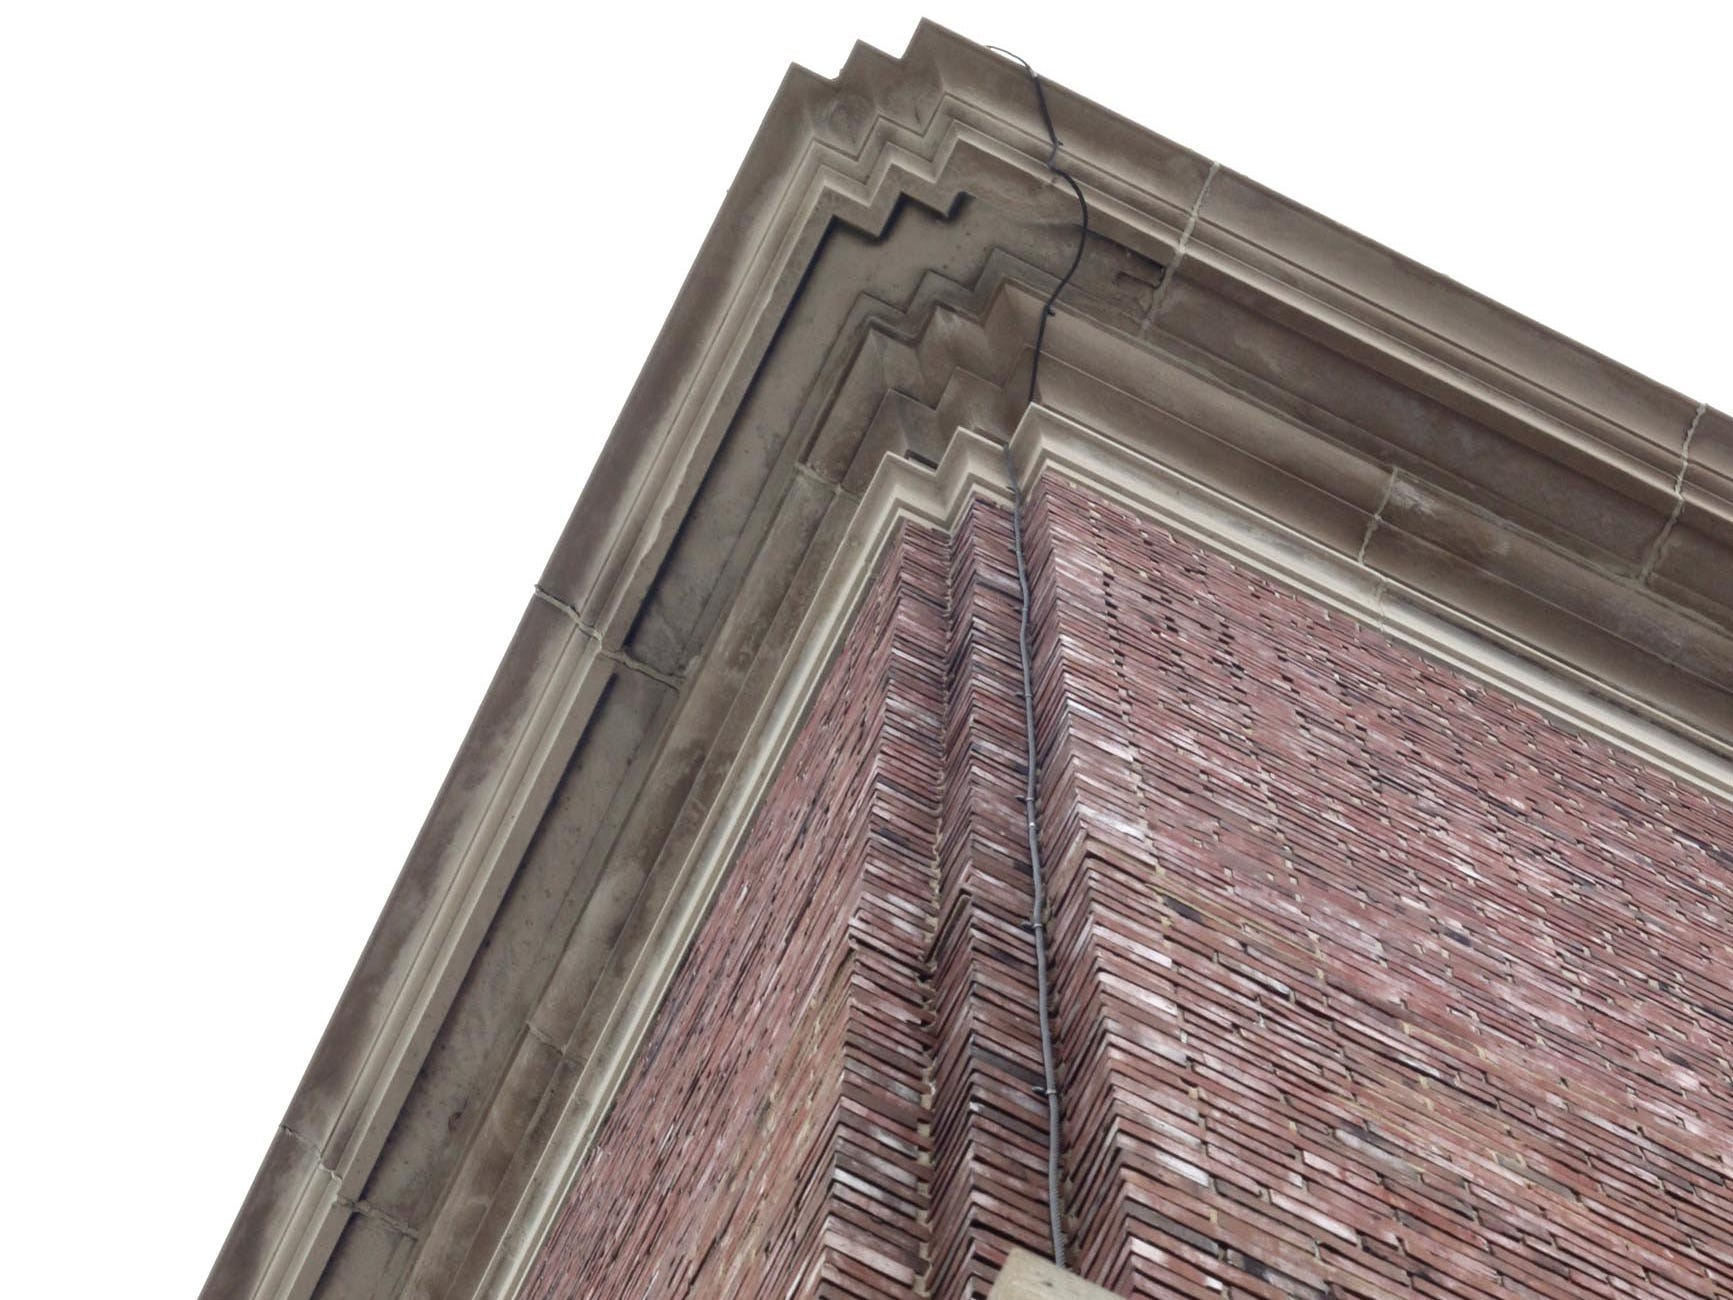 Details of the corners of city hall as seen, Thursday, October 2, 2014, in Sheboygan, Wis. In 1915, building was to cost $74,584. Another $75,000 was used in finally completing it.  Today the 2018 renovations have a budget of 10.5 million dollars.